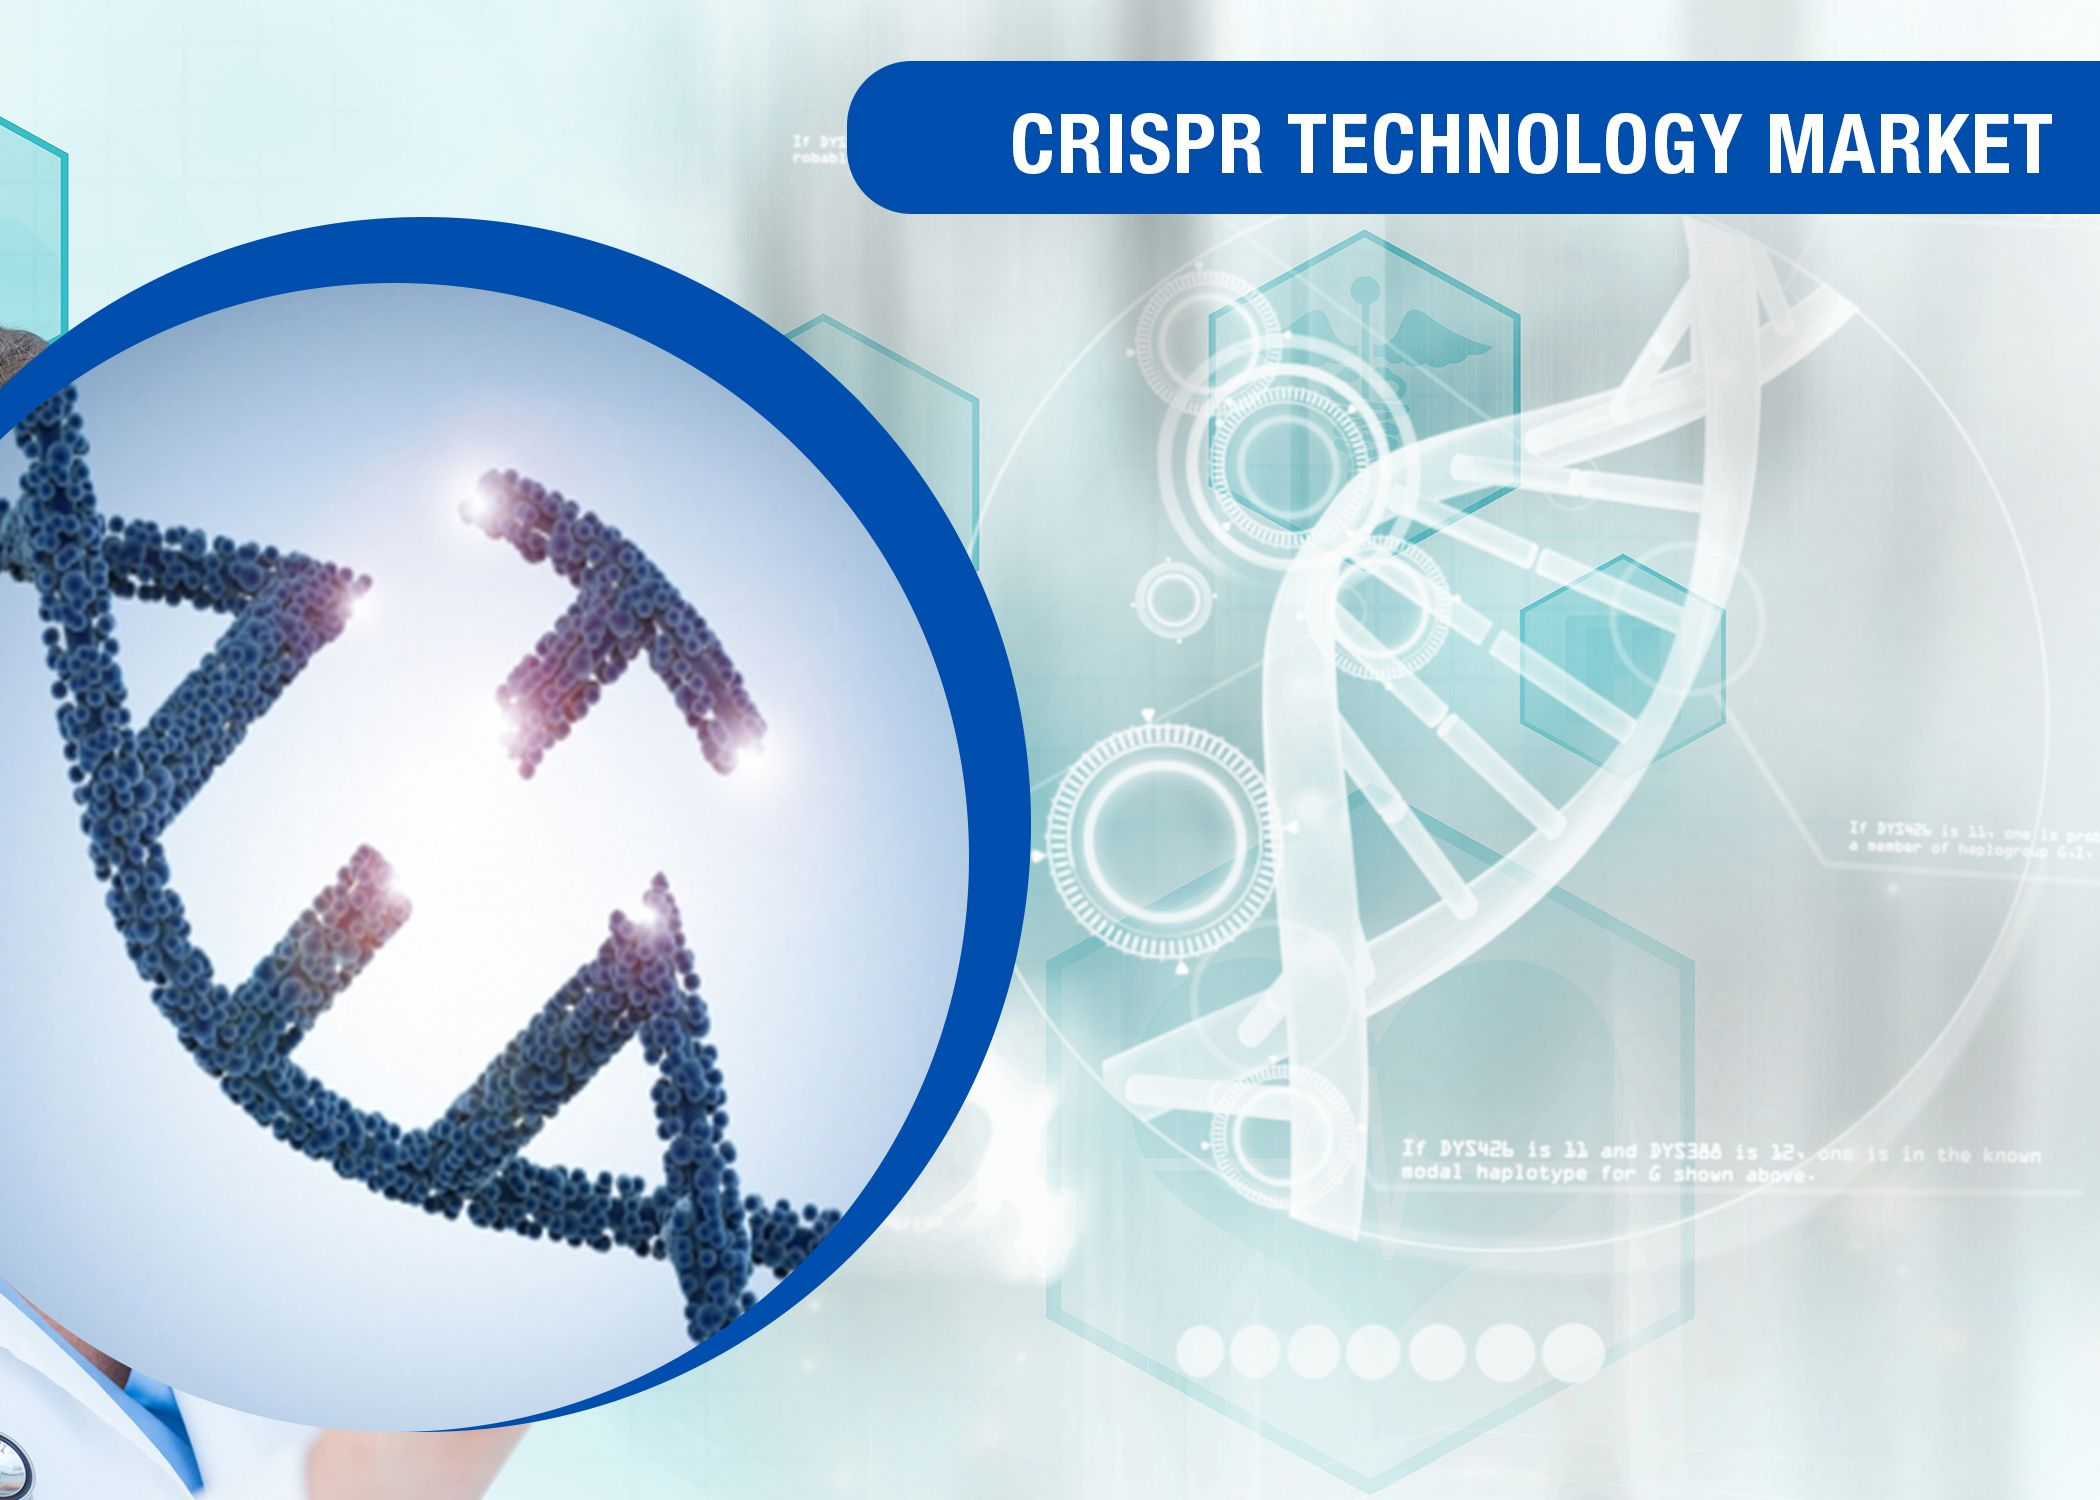 Crispr Technology Market Forecast To 2030 Technology Contract Research Organization Biomedical